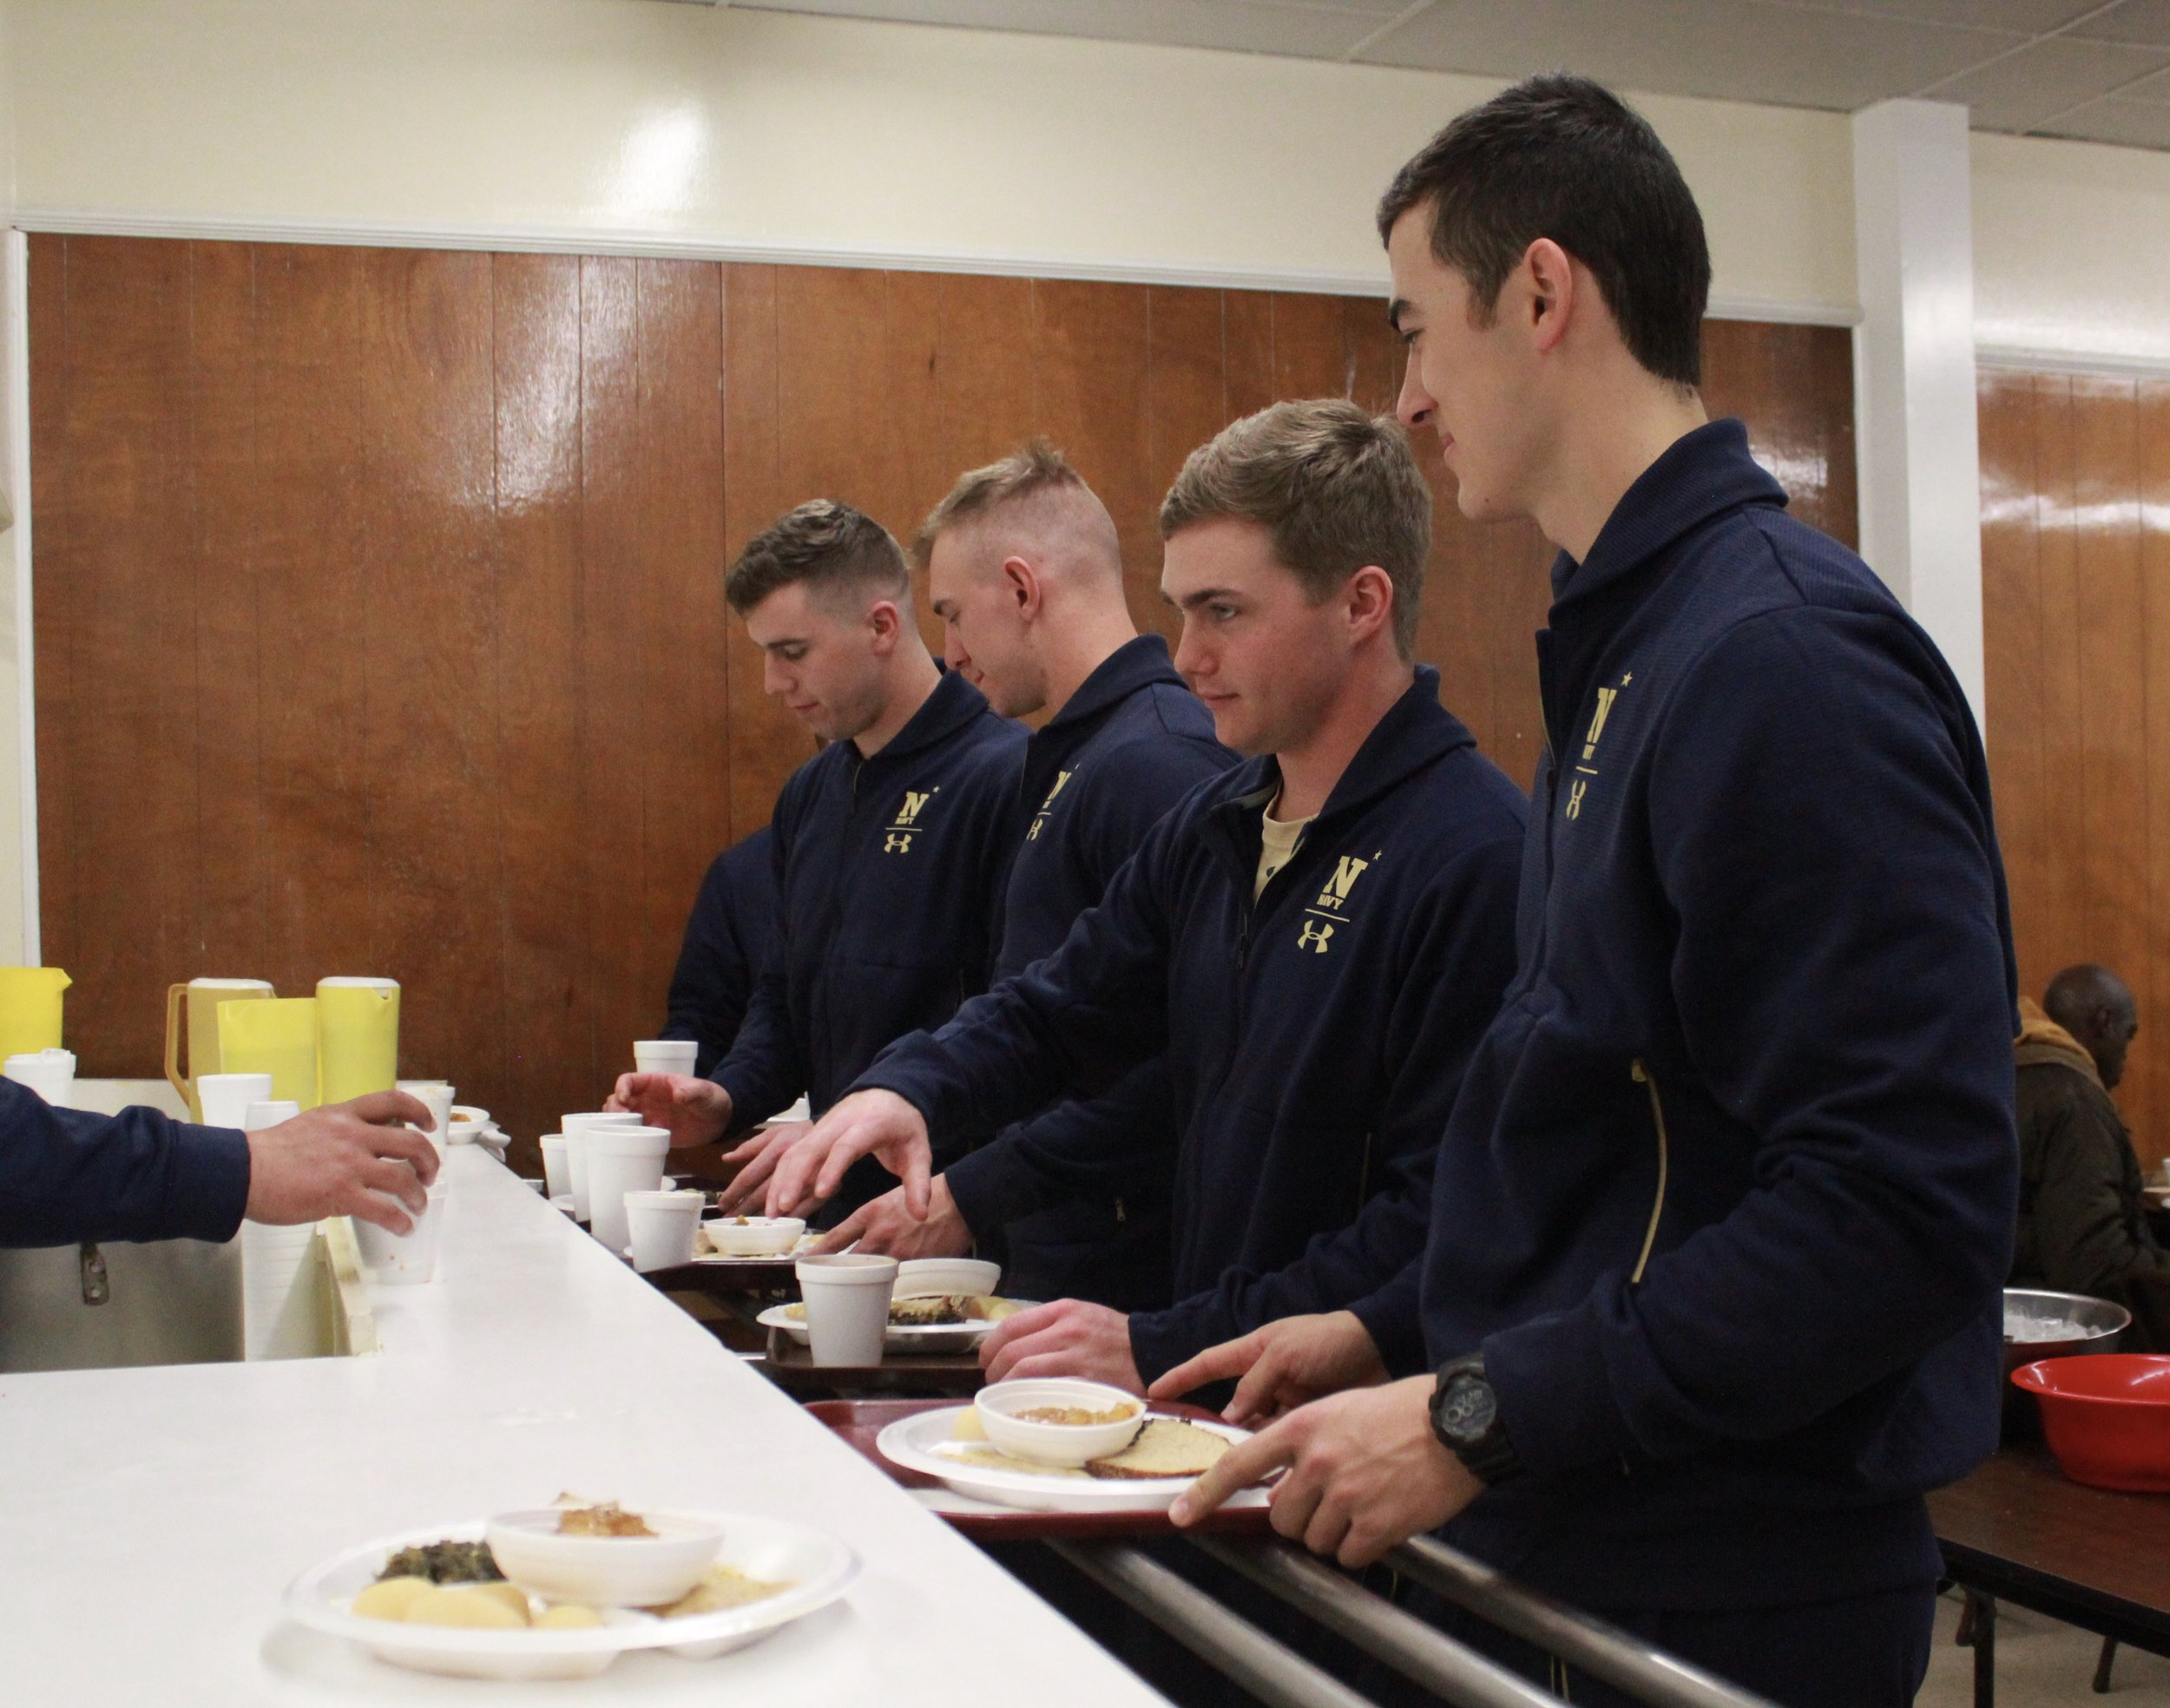 From left, U.S. Naval Academy baseball players Charlie Connolly, Evan Lowery, Jack Ferguson and Noah Song serve meals at Mary's Kitchen in Kinston on Friday. Photo by Linda Whittington / Neuse News